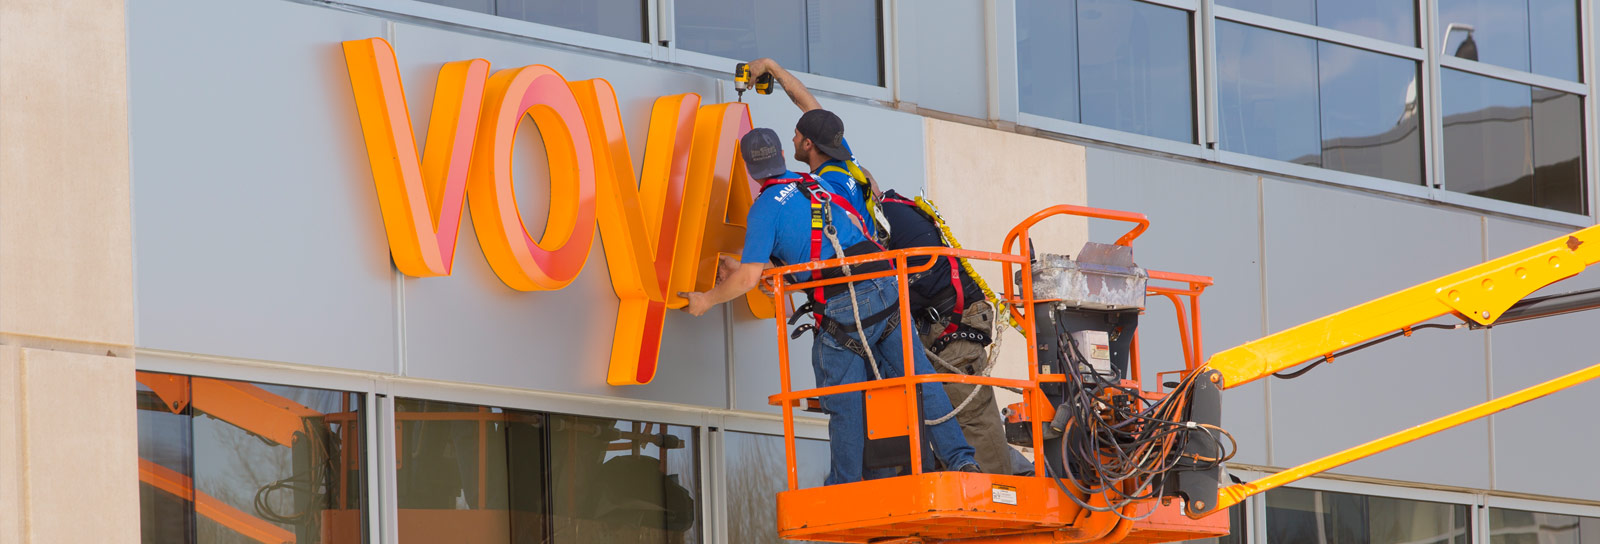 How to Maintain a Neon Sign in NYC